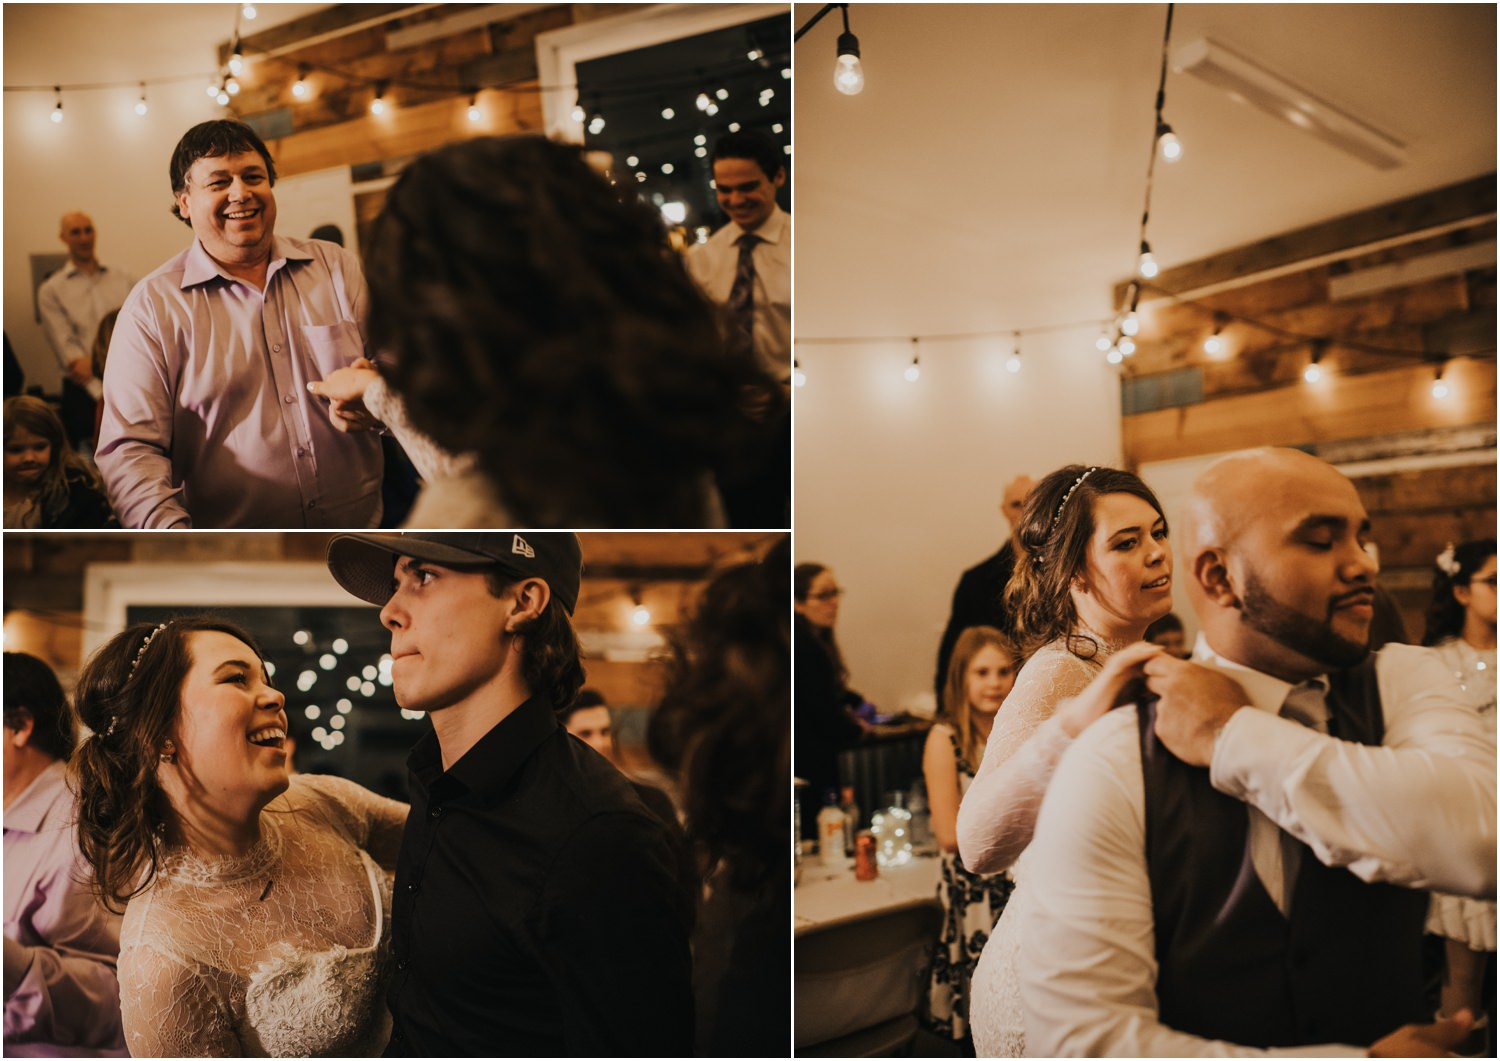 Kelowna Winter Wedding - Joelsview Photography_0149